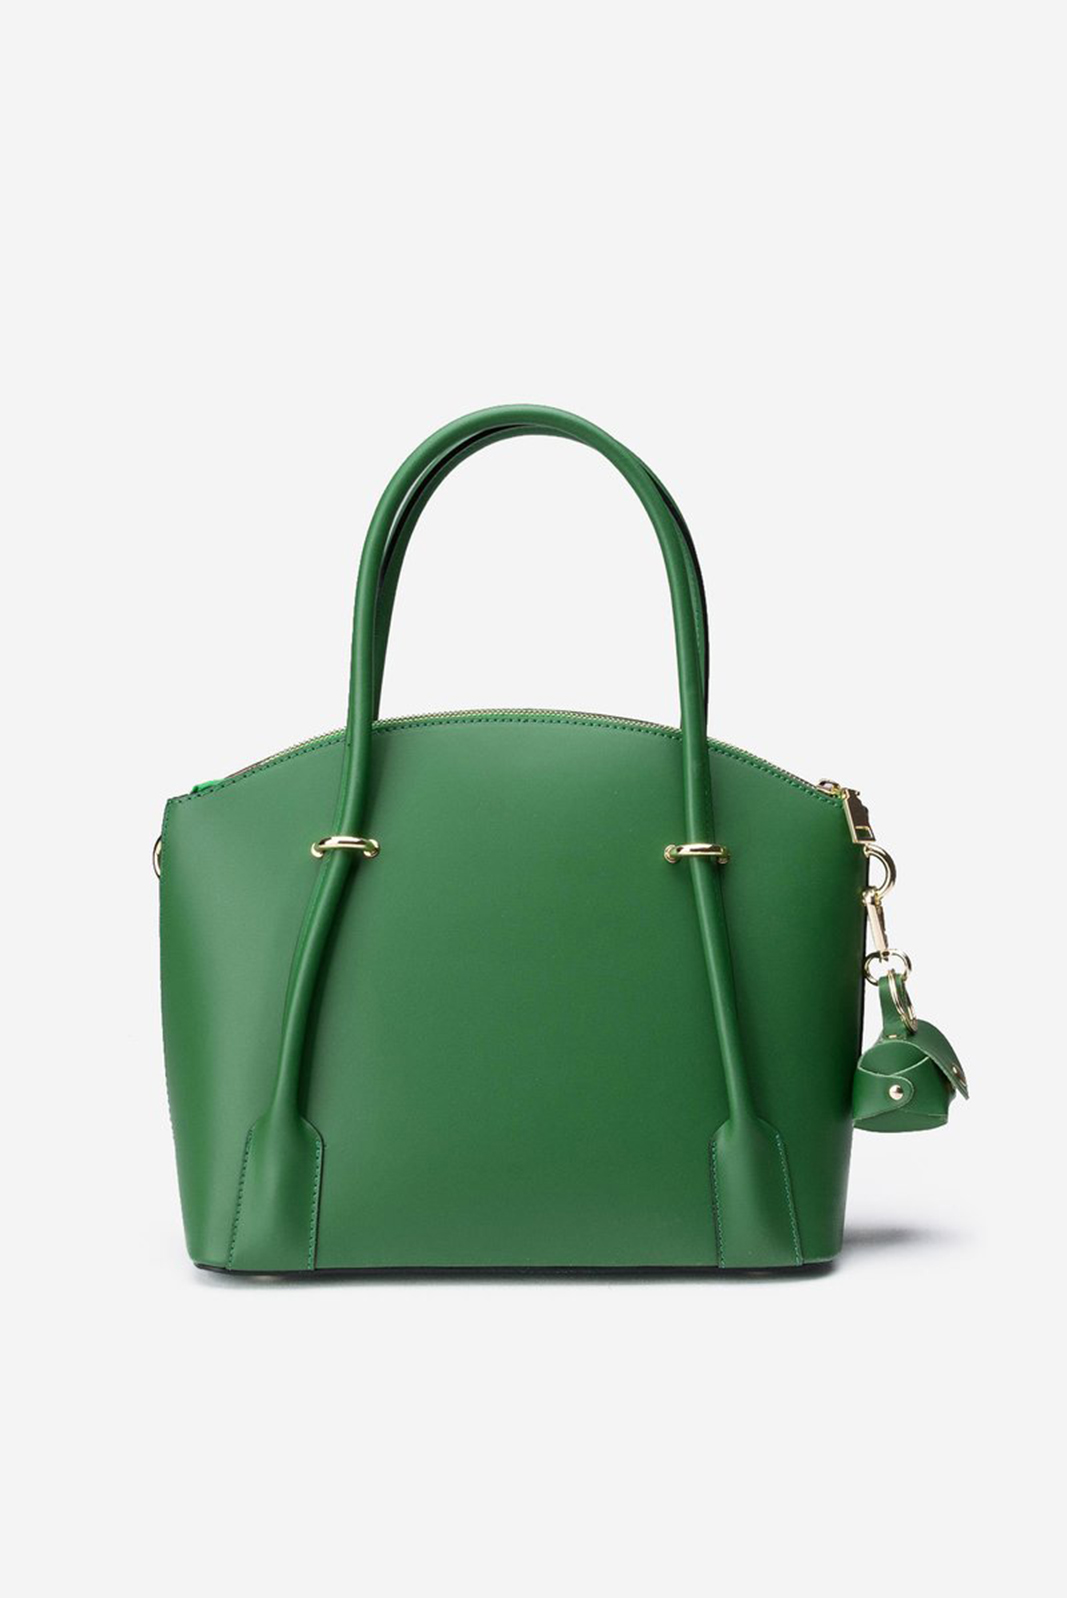 Green office bag natural leather long, adjustable handle